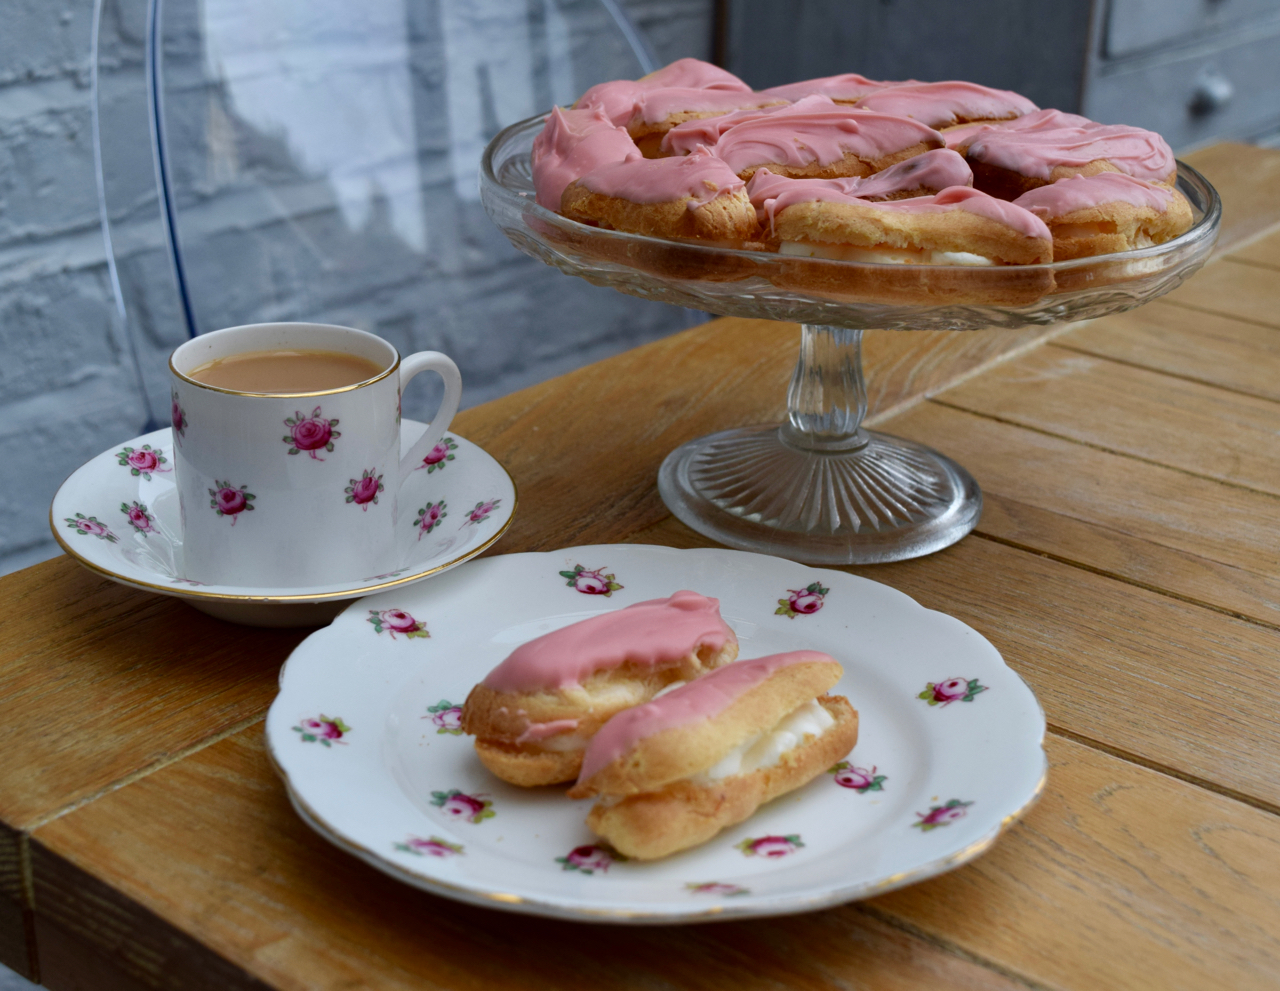 Tiny-eclairs-recipe-lucyloves-foodblog